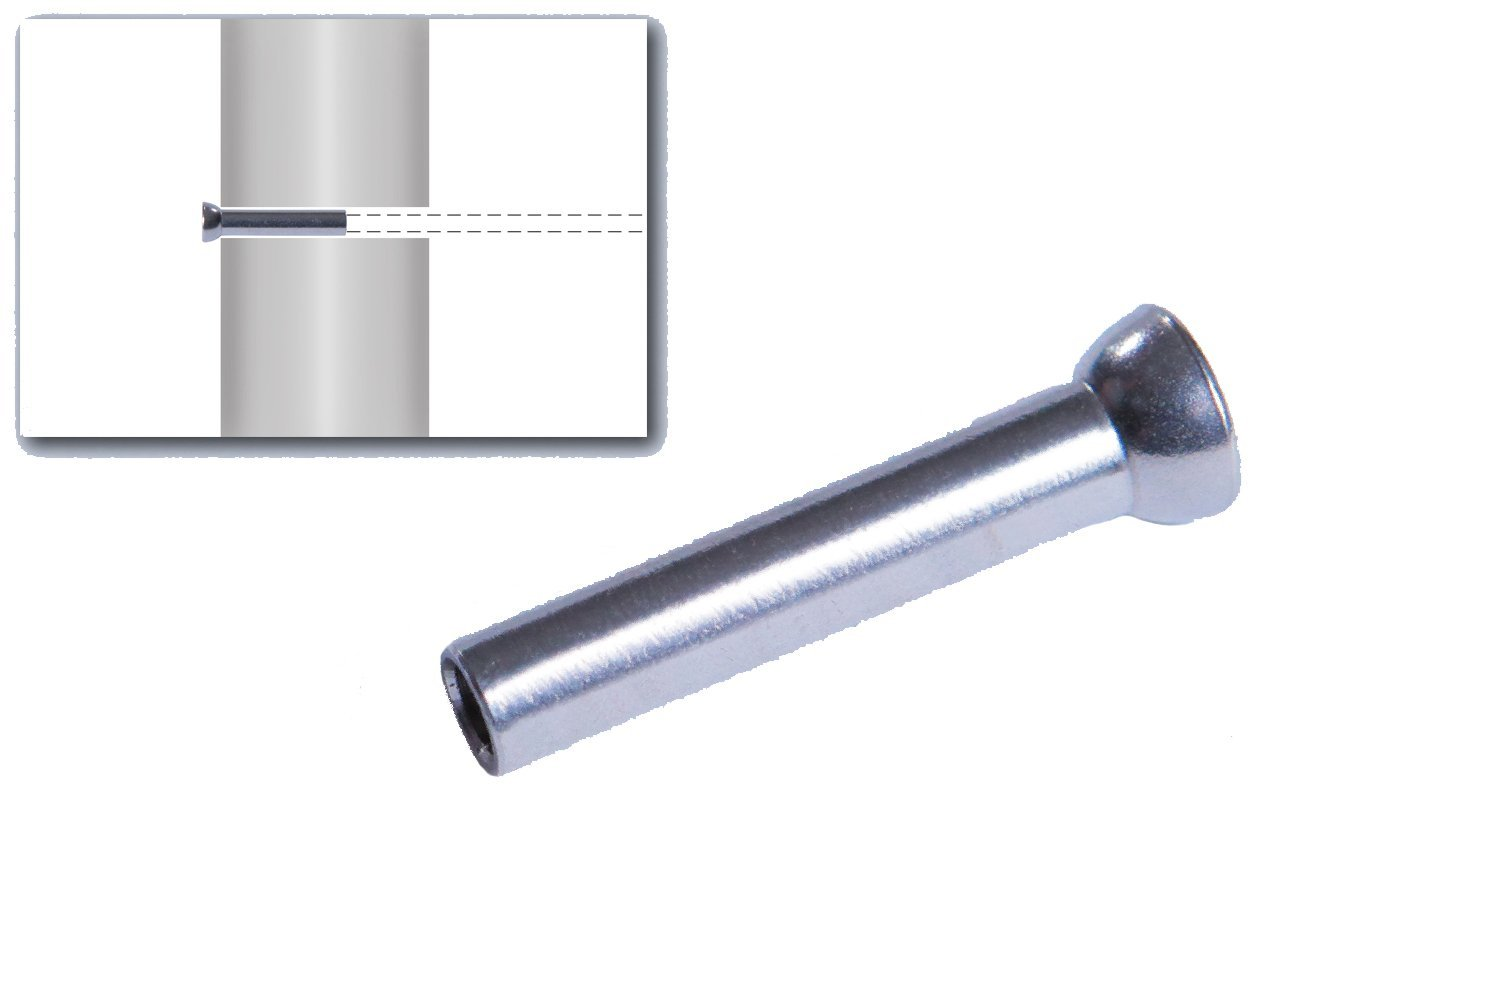 """VistaView CableTec Stainless Steel Hand-Crimp Stemball Swages for 3/16"""" Cable Railing with Stainless Washers (Lot of 10)"""